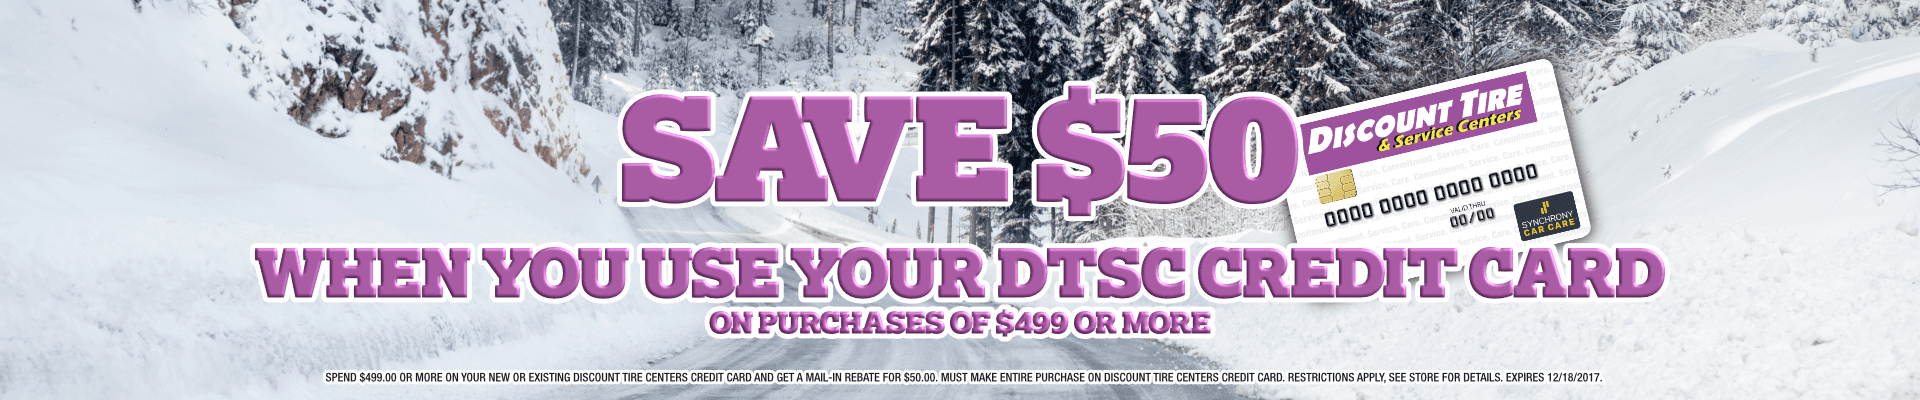 Save $50 When You Use Your Discount Tire Centers Credit Card